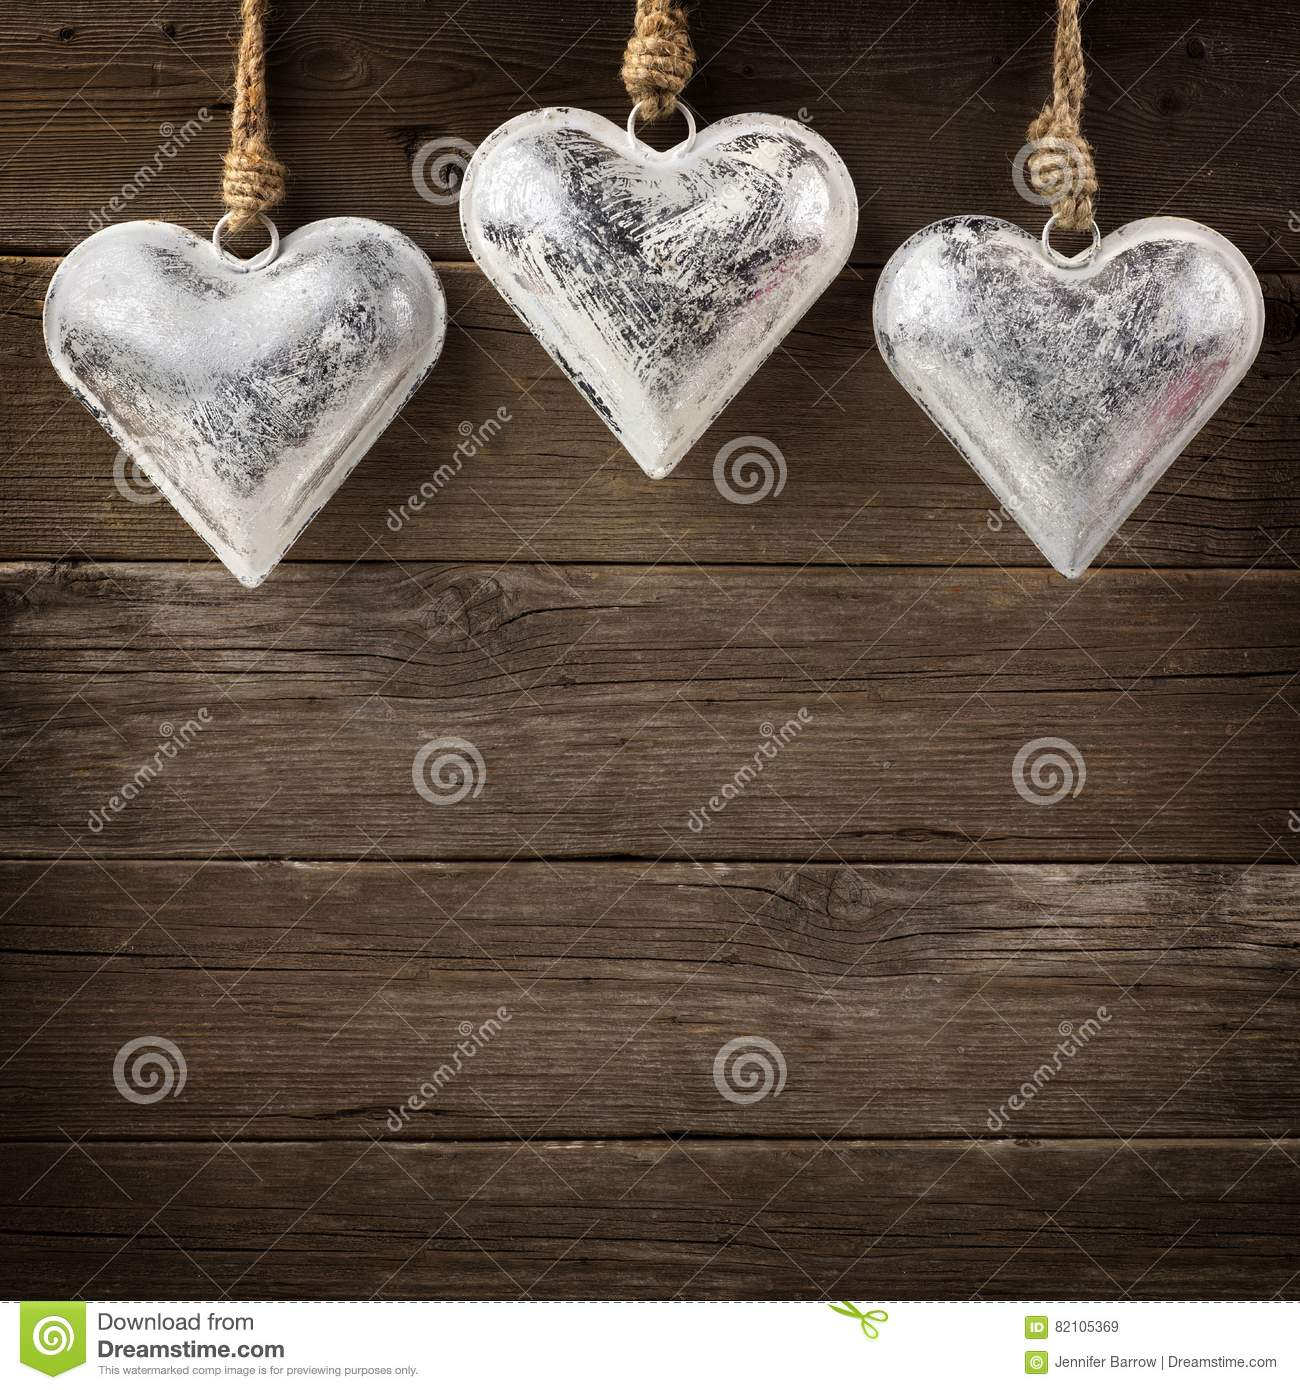 Metal heart ornaments - Against Background Hanging Heart Metal Ornaments